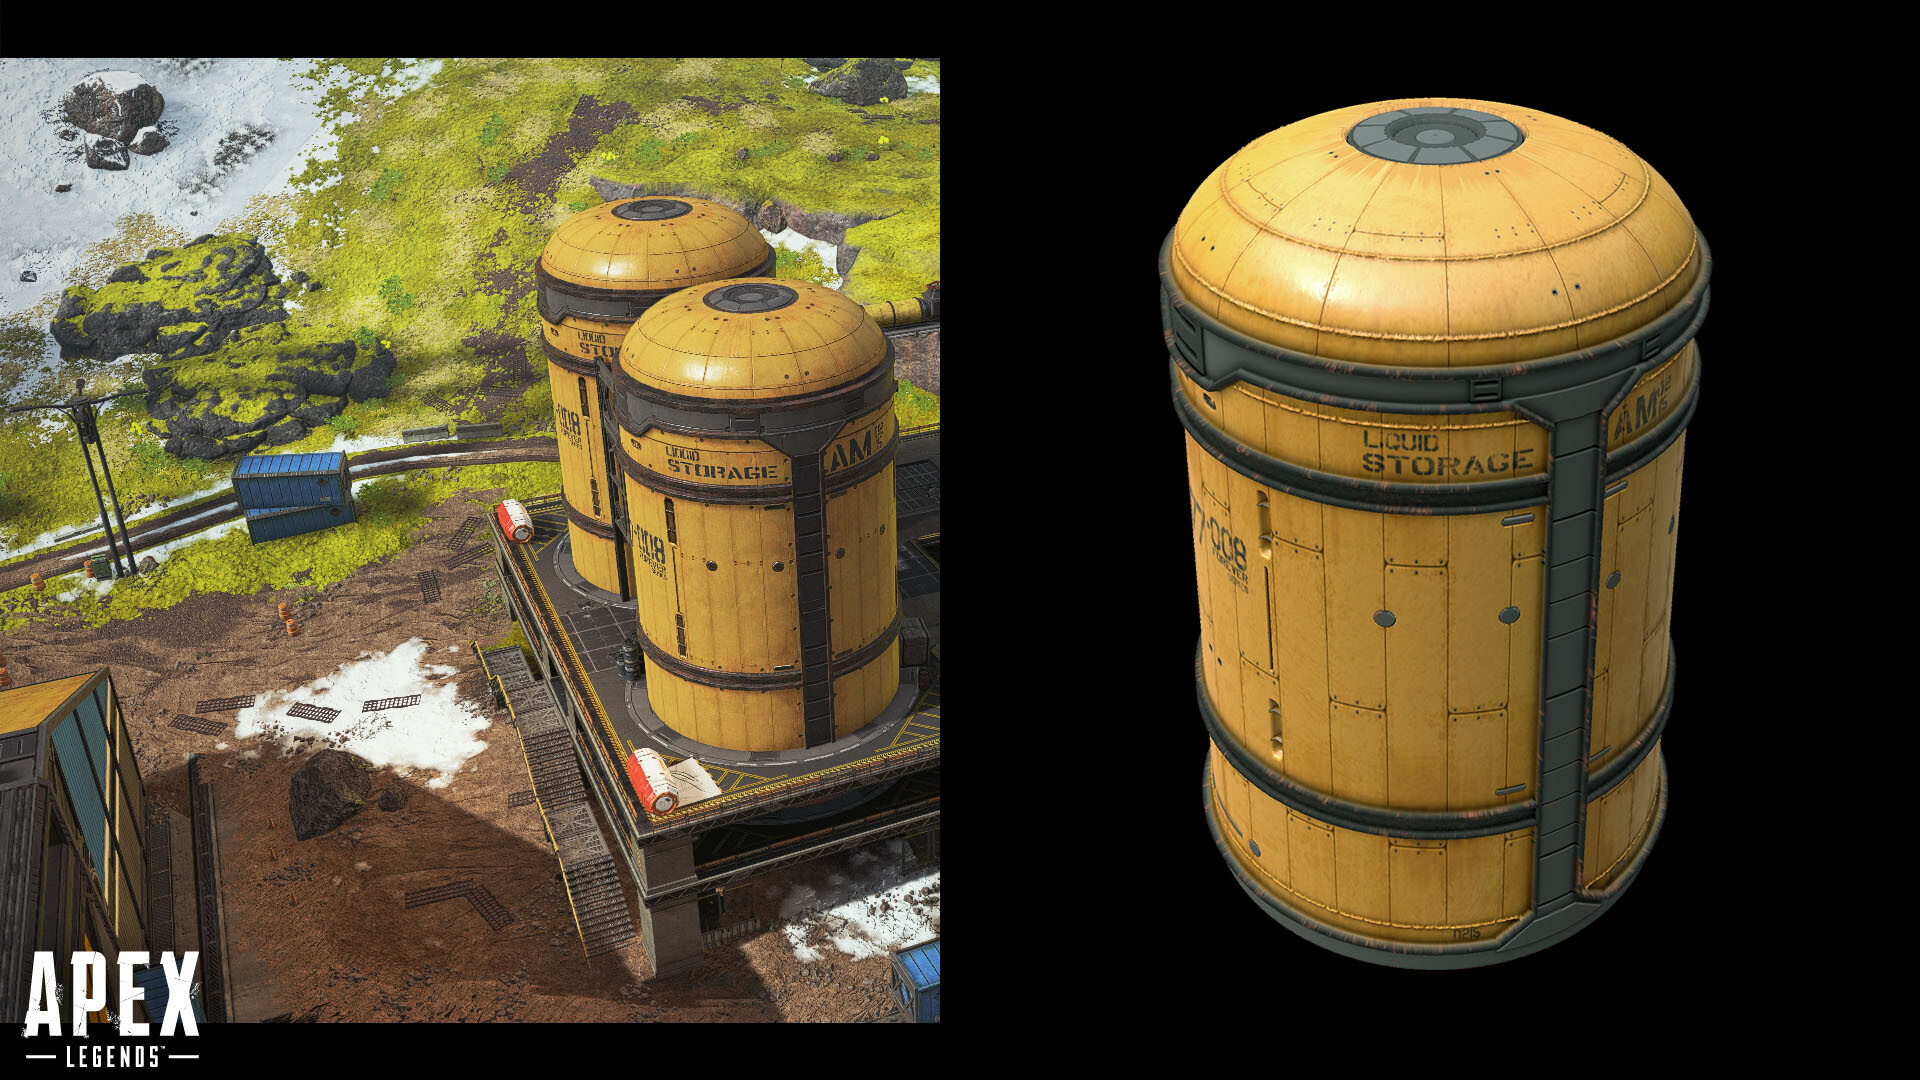 Comparison shot. Image courtesy of Respawn Entertainment.